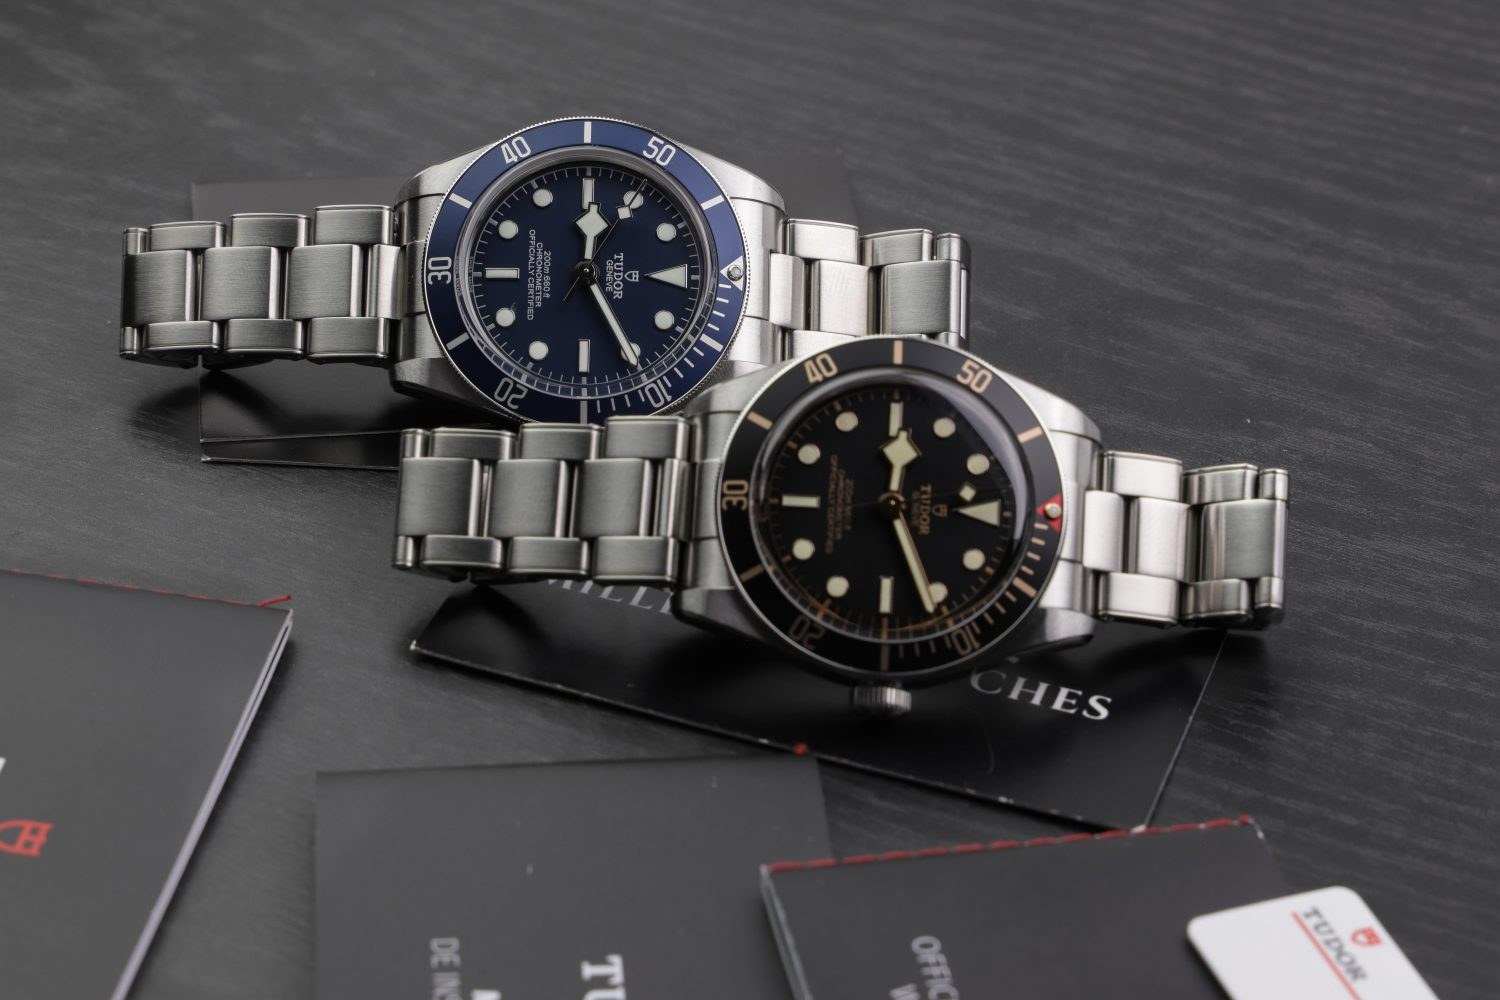 Tudor Black Bay 58 79030N and Tudor black Bay 58 79030B Blue